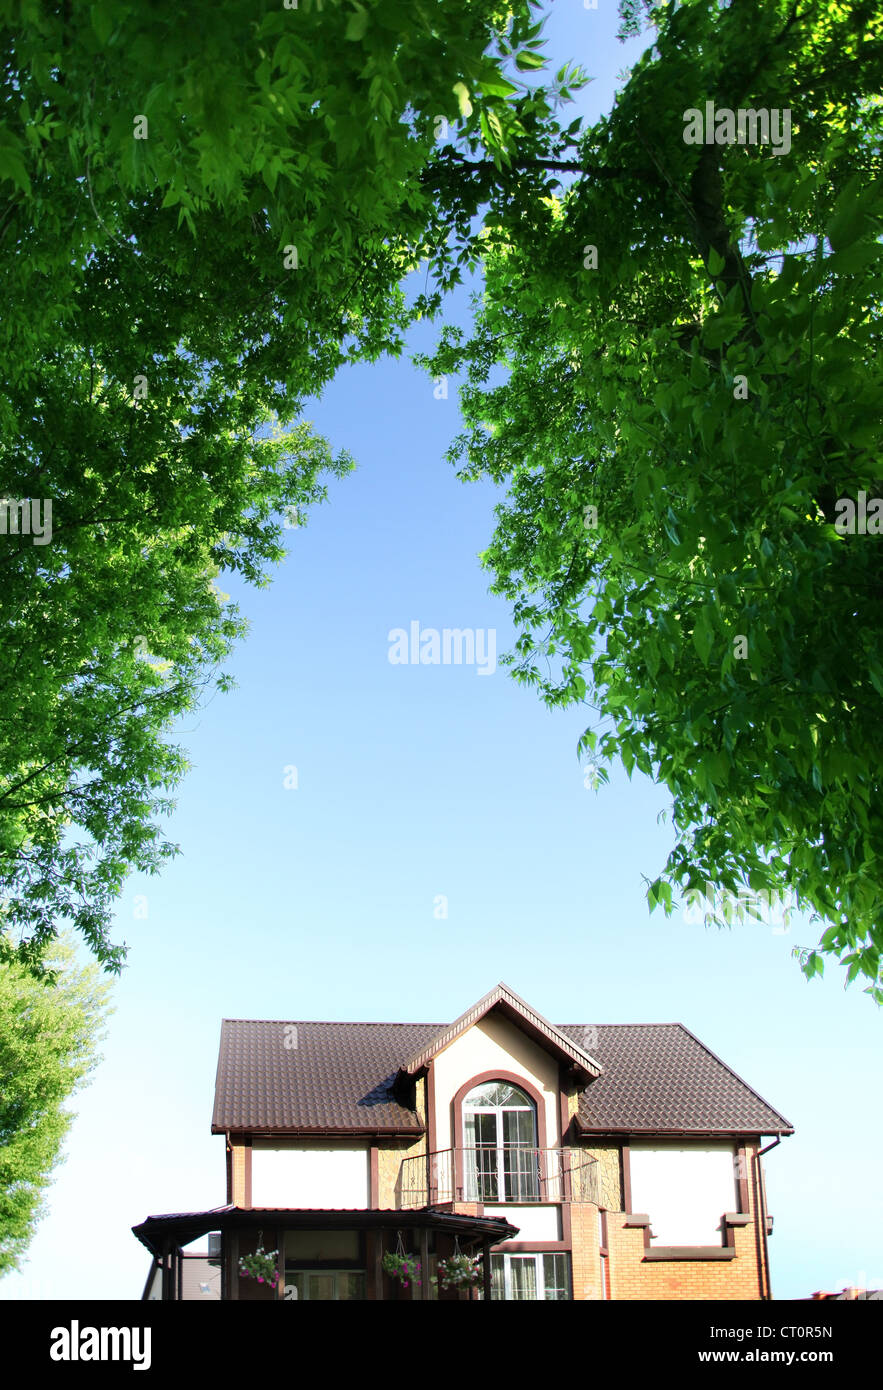 Beautiful house under the arch of trees in the background of the summer sky. - Stock Image